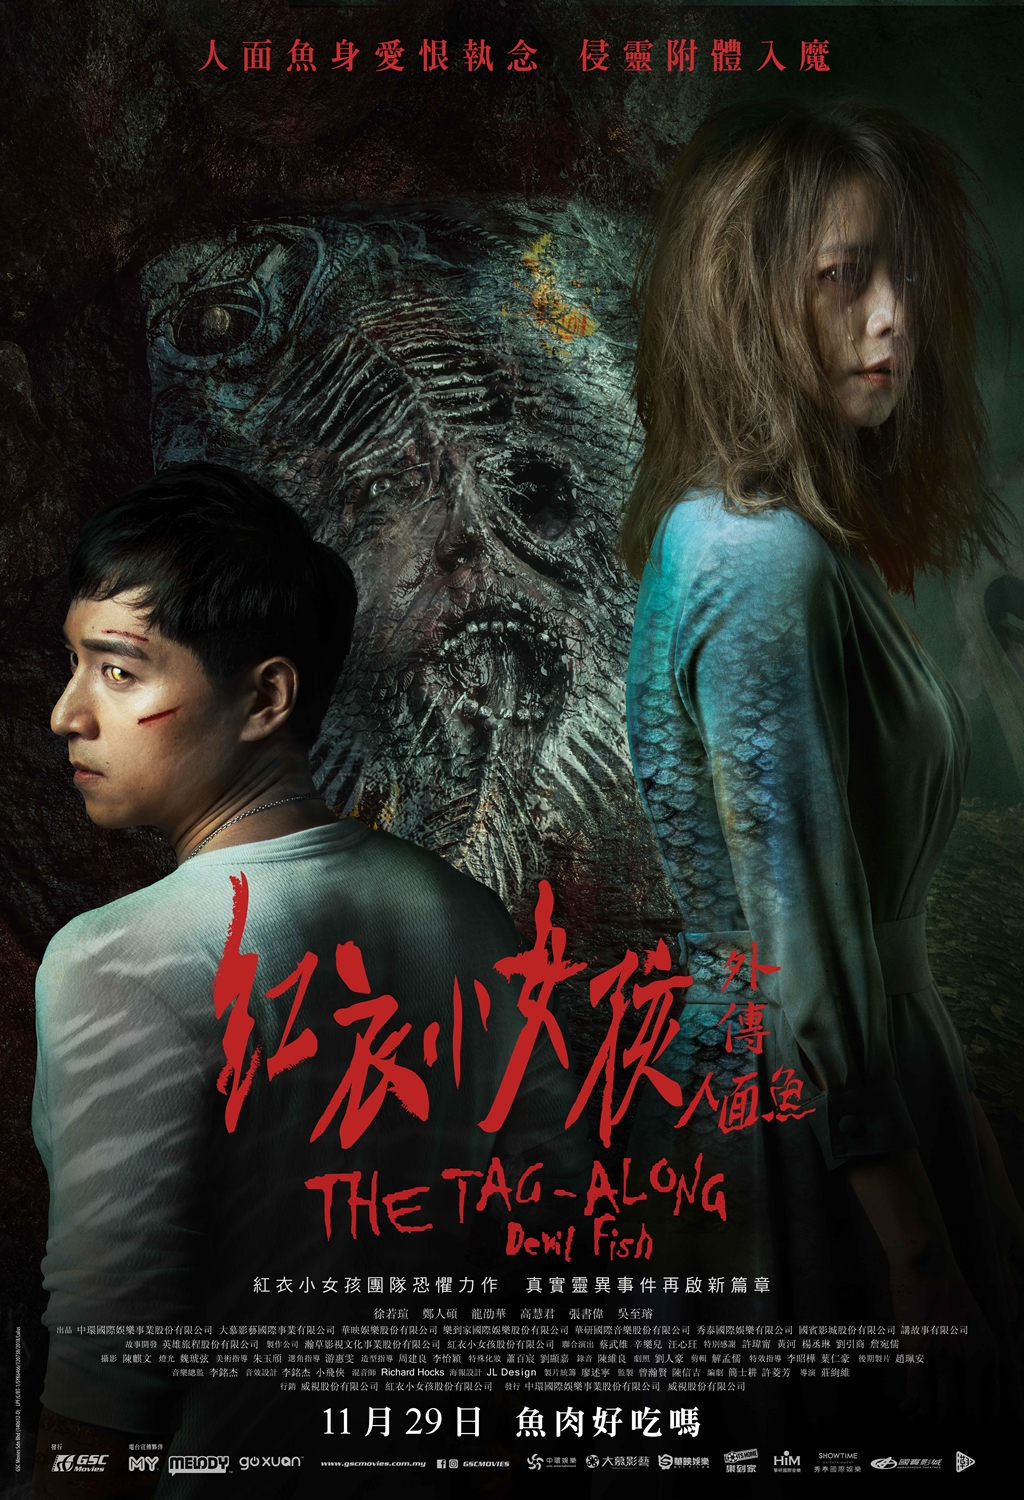 Tag Along - Taiwan ghost story poster